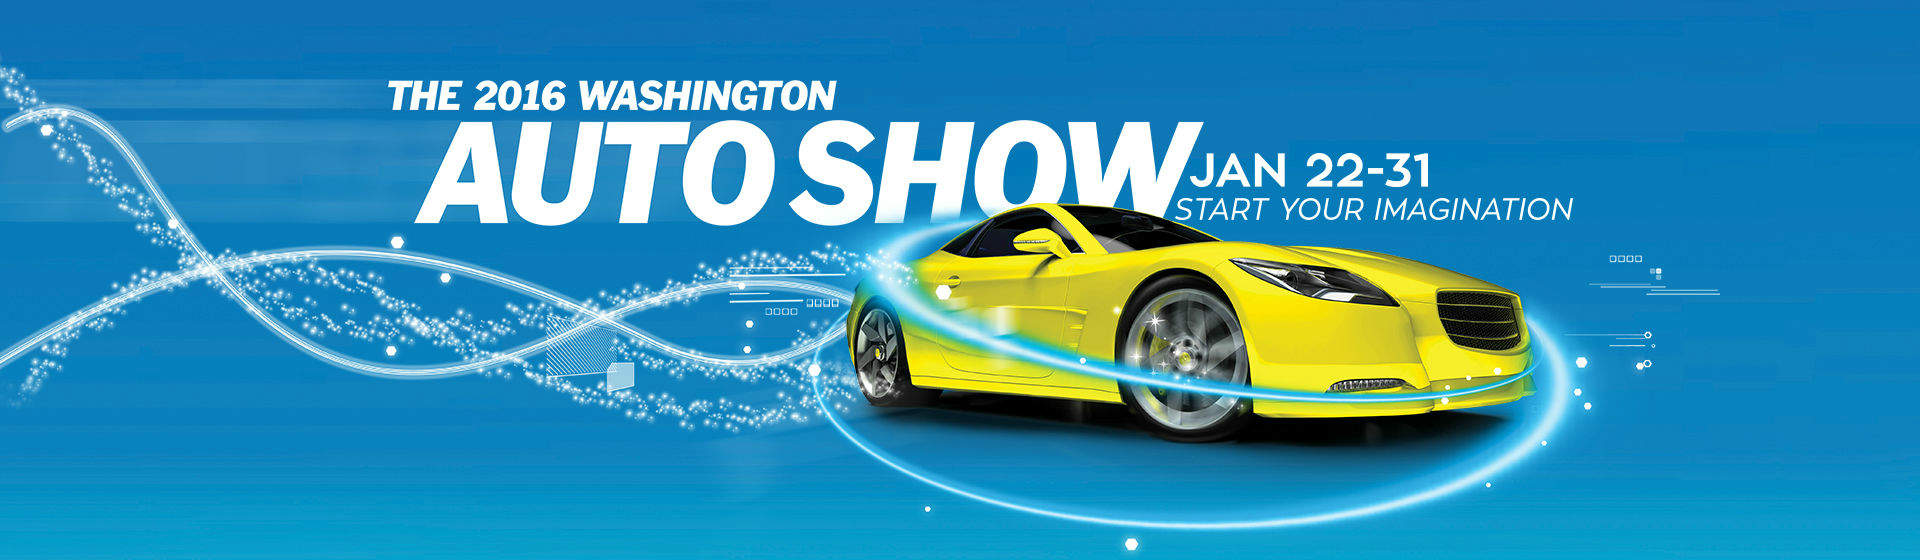 Washington Auto Show - January 22 to 31 - Start Your Imagination